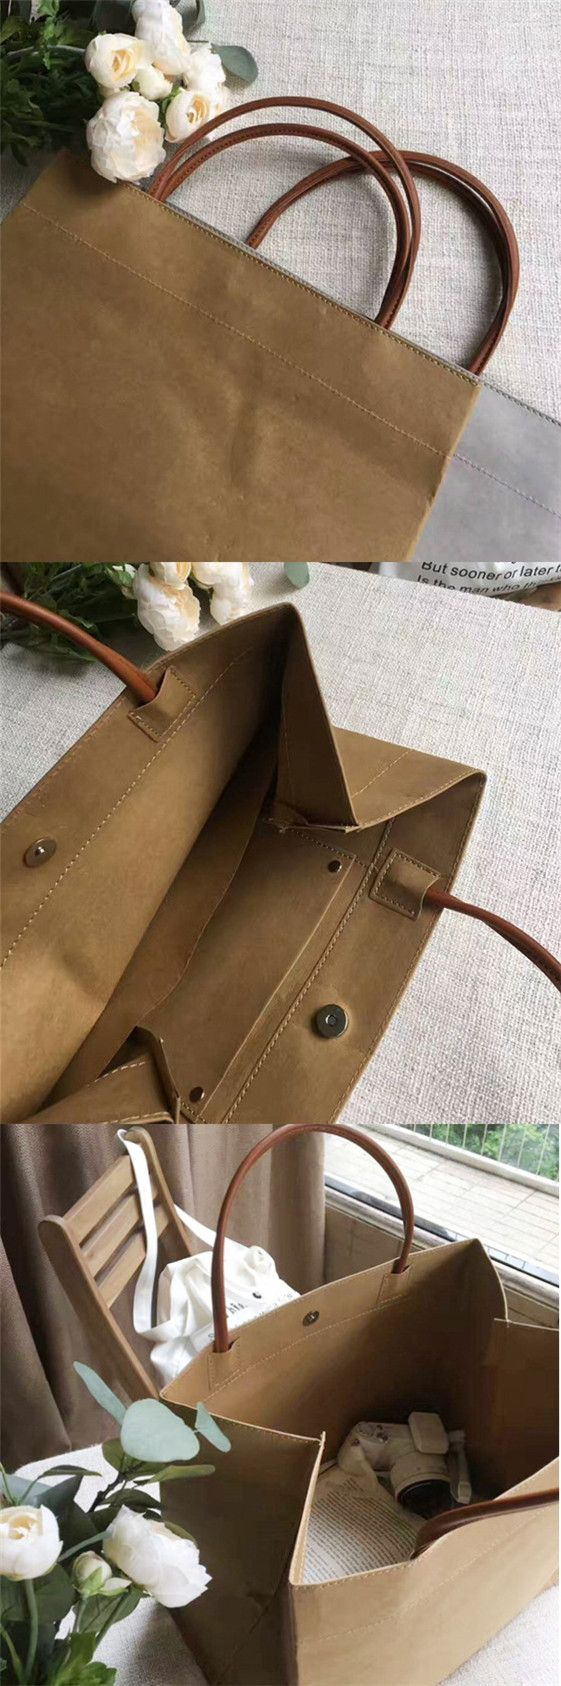 Coming Soon! reusable grocery bags waterproof bag reusable shopping bags brown paper bag wholesale kraft paper bag